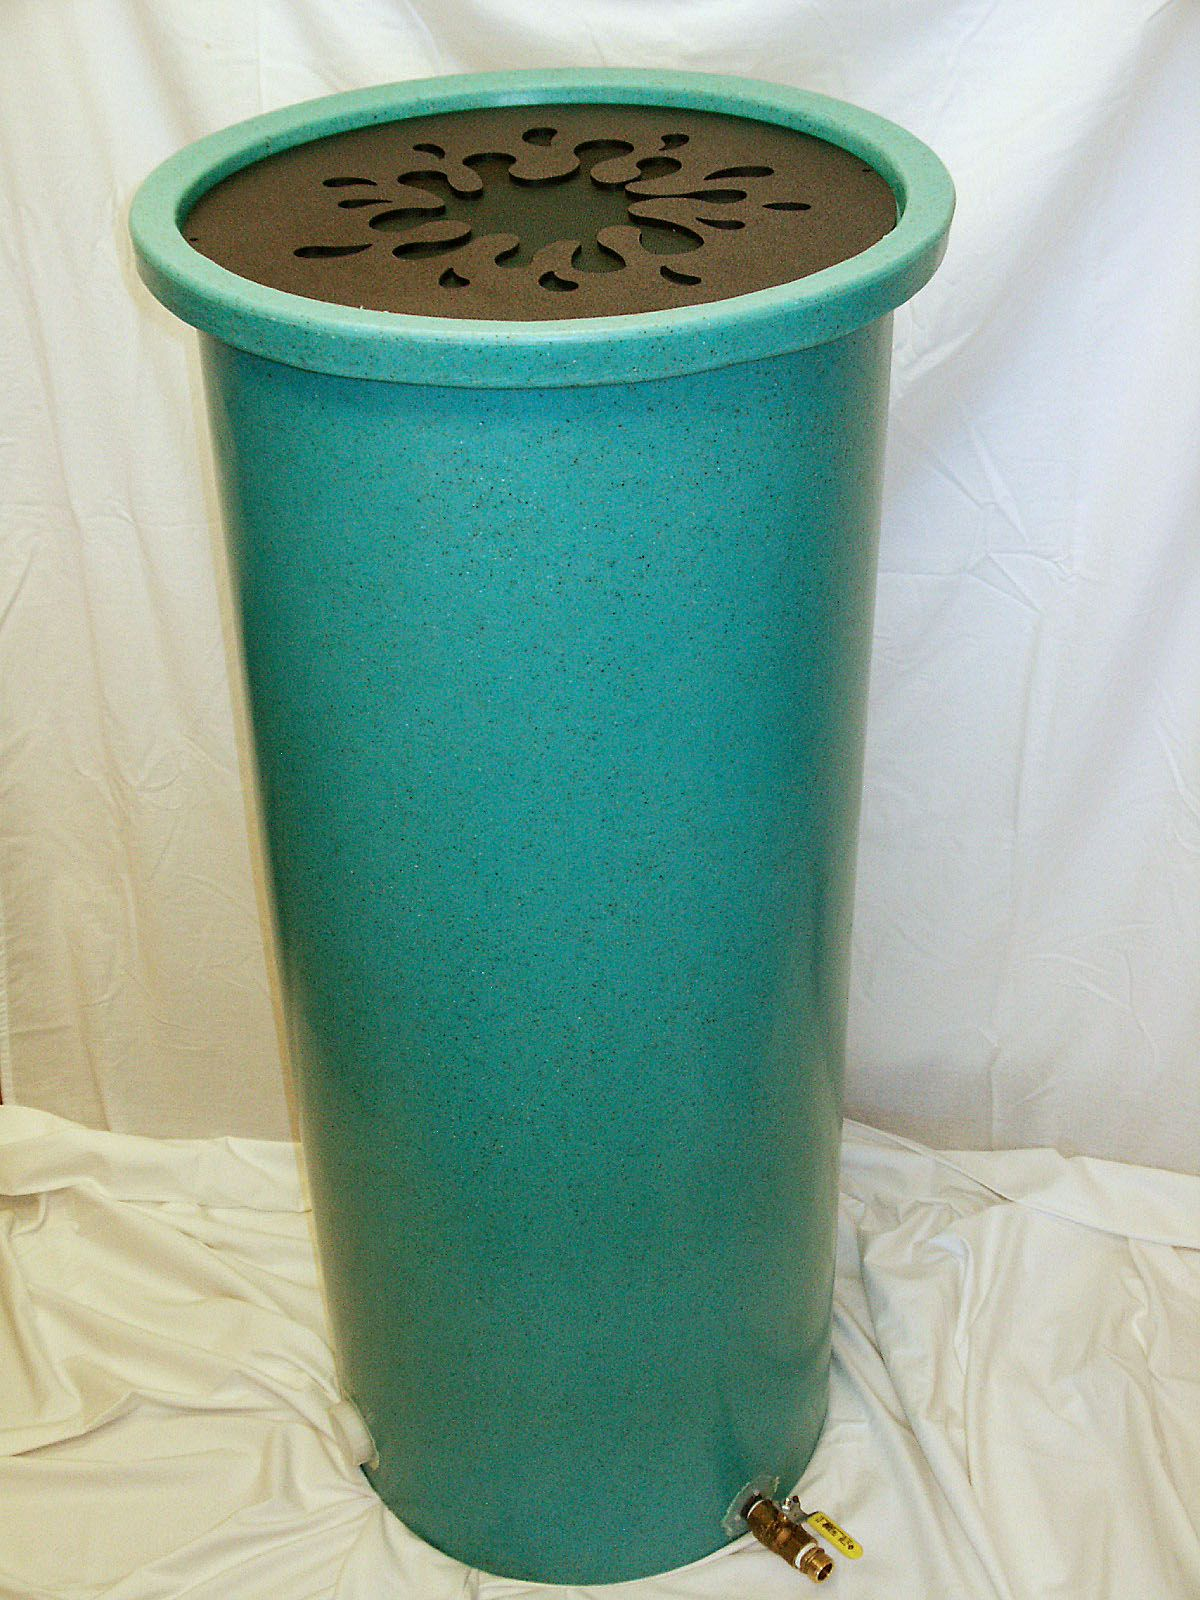 65 Gallon Durango Rain Barrel Rain Barrel Water Barrel Rain Water Barrel